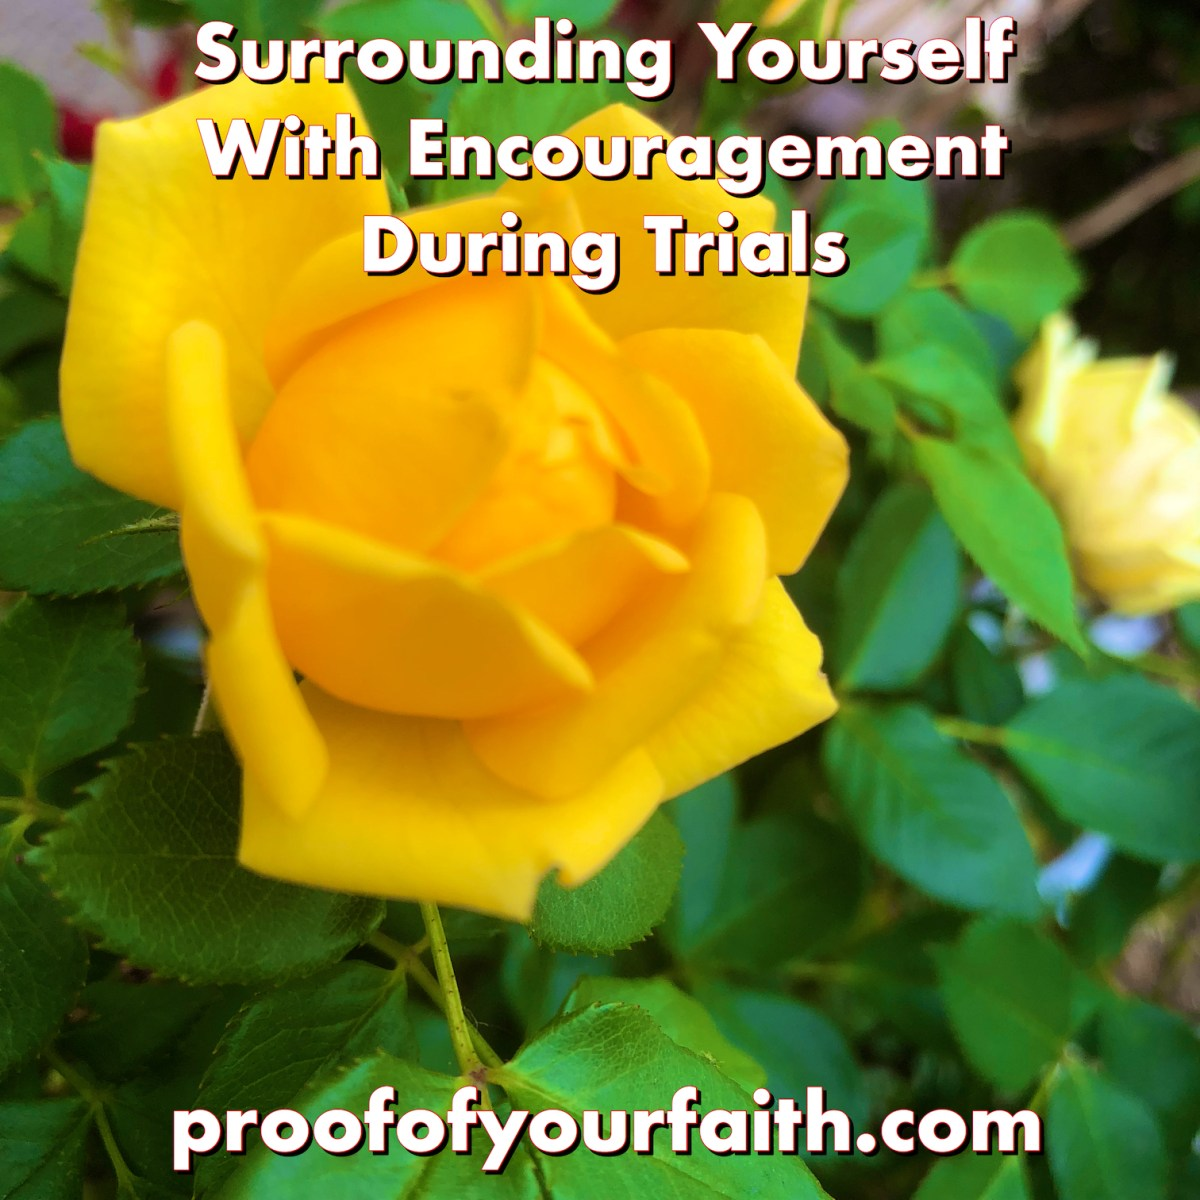 Surrounding Yourself With Encouragement During Trials